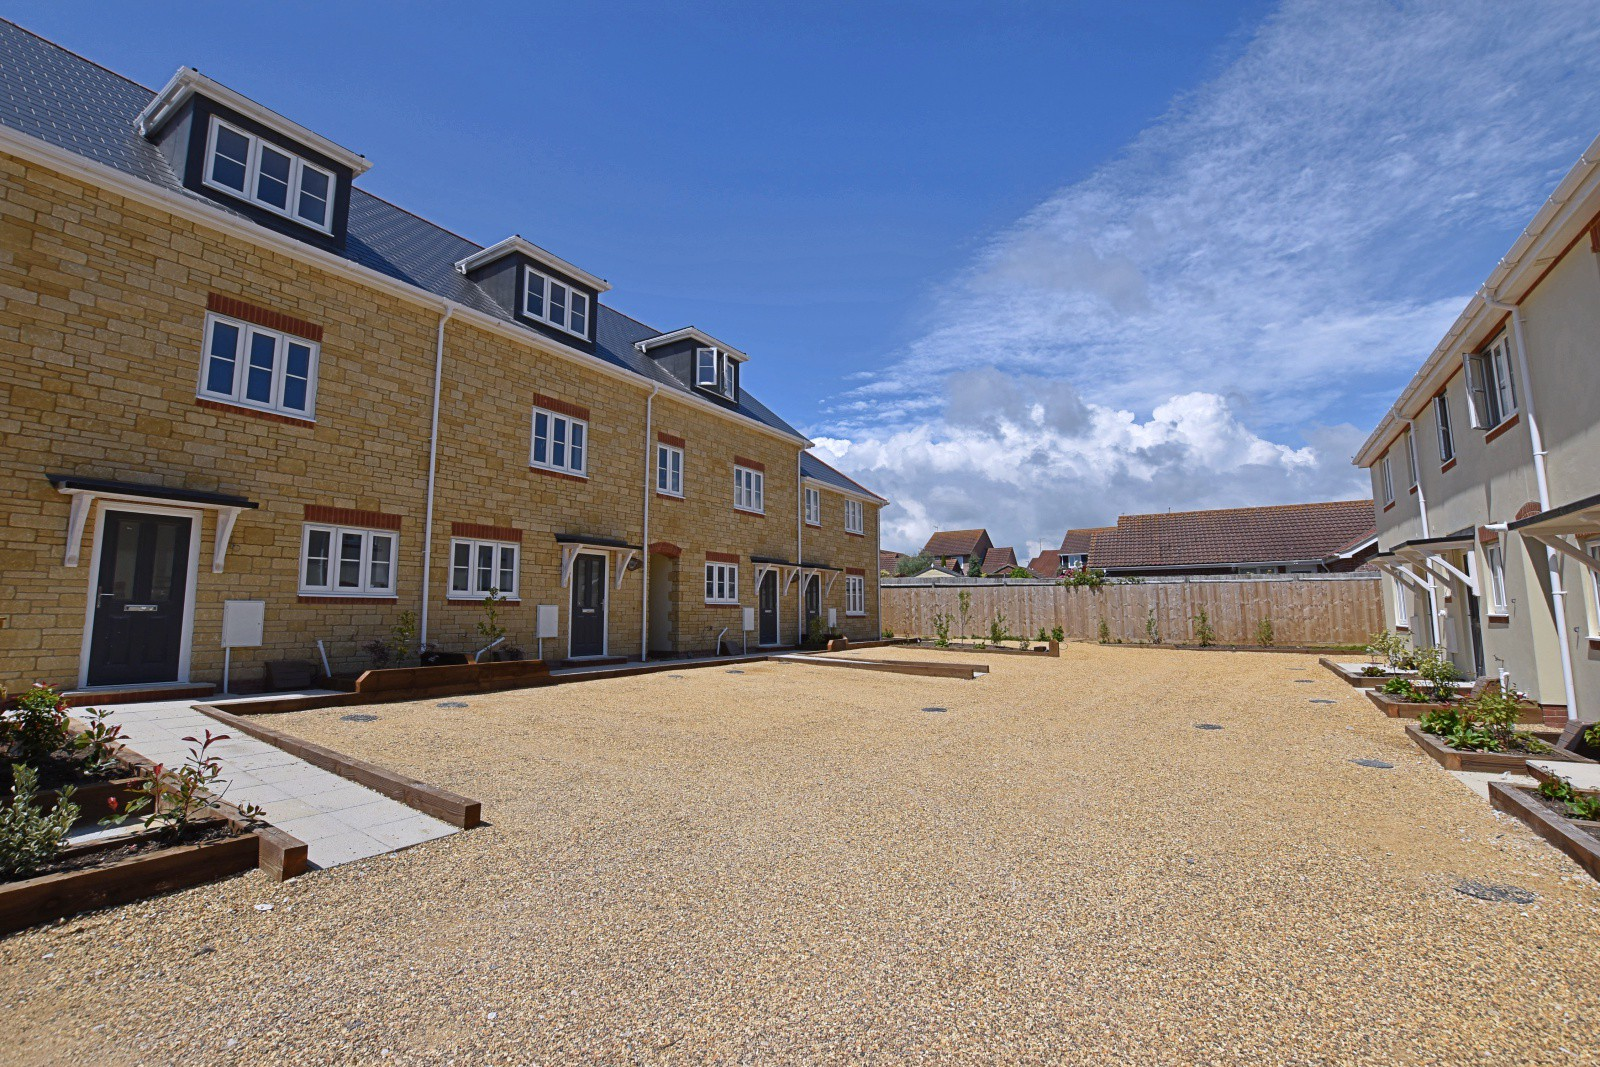 Plot 1 Daylesford, Weymouth